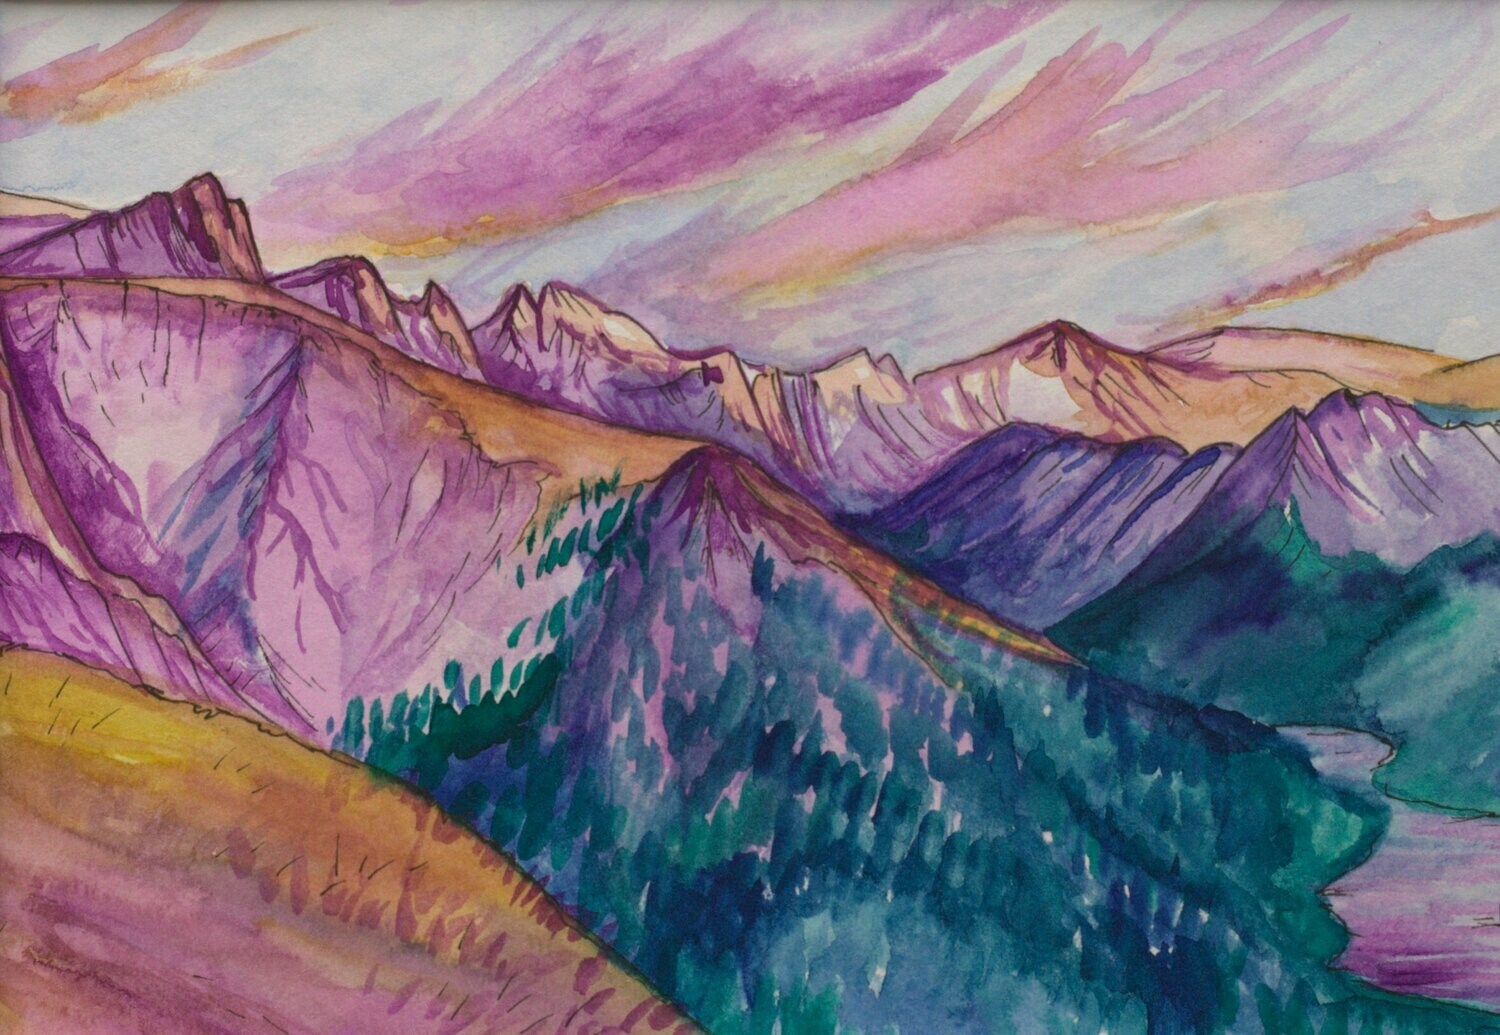 Sunrise in the Beartooths: A pink mountain landscape